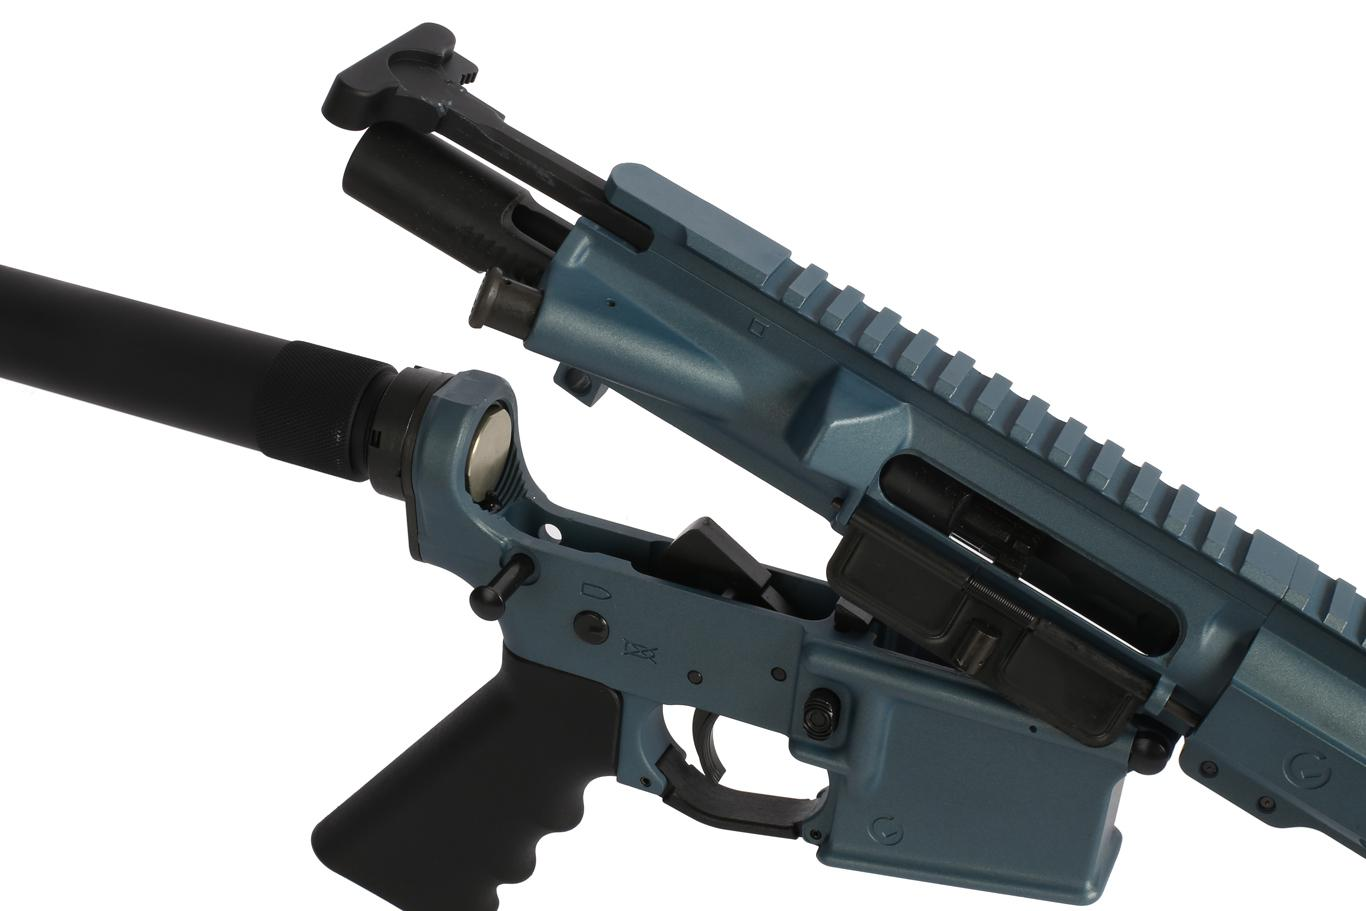 This 10.5 ar 15 pistol with M-LOK free float handguard comes with Mil-Spec charging handle and bcg